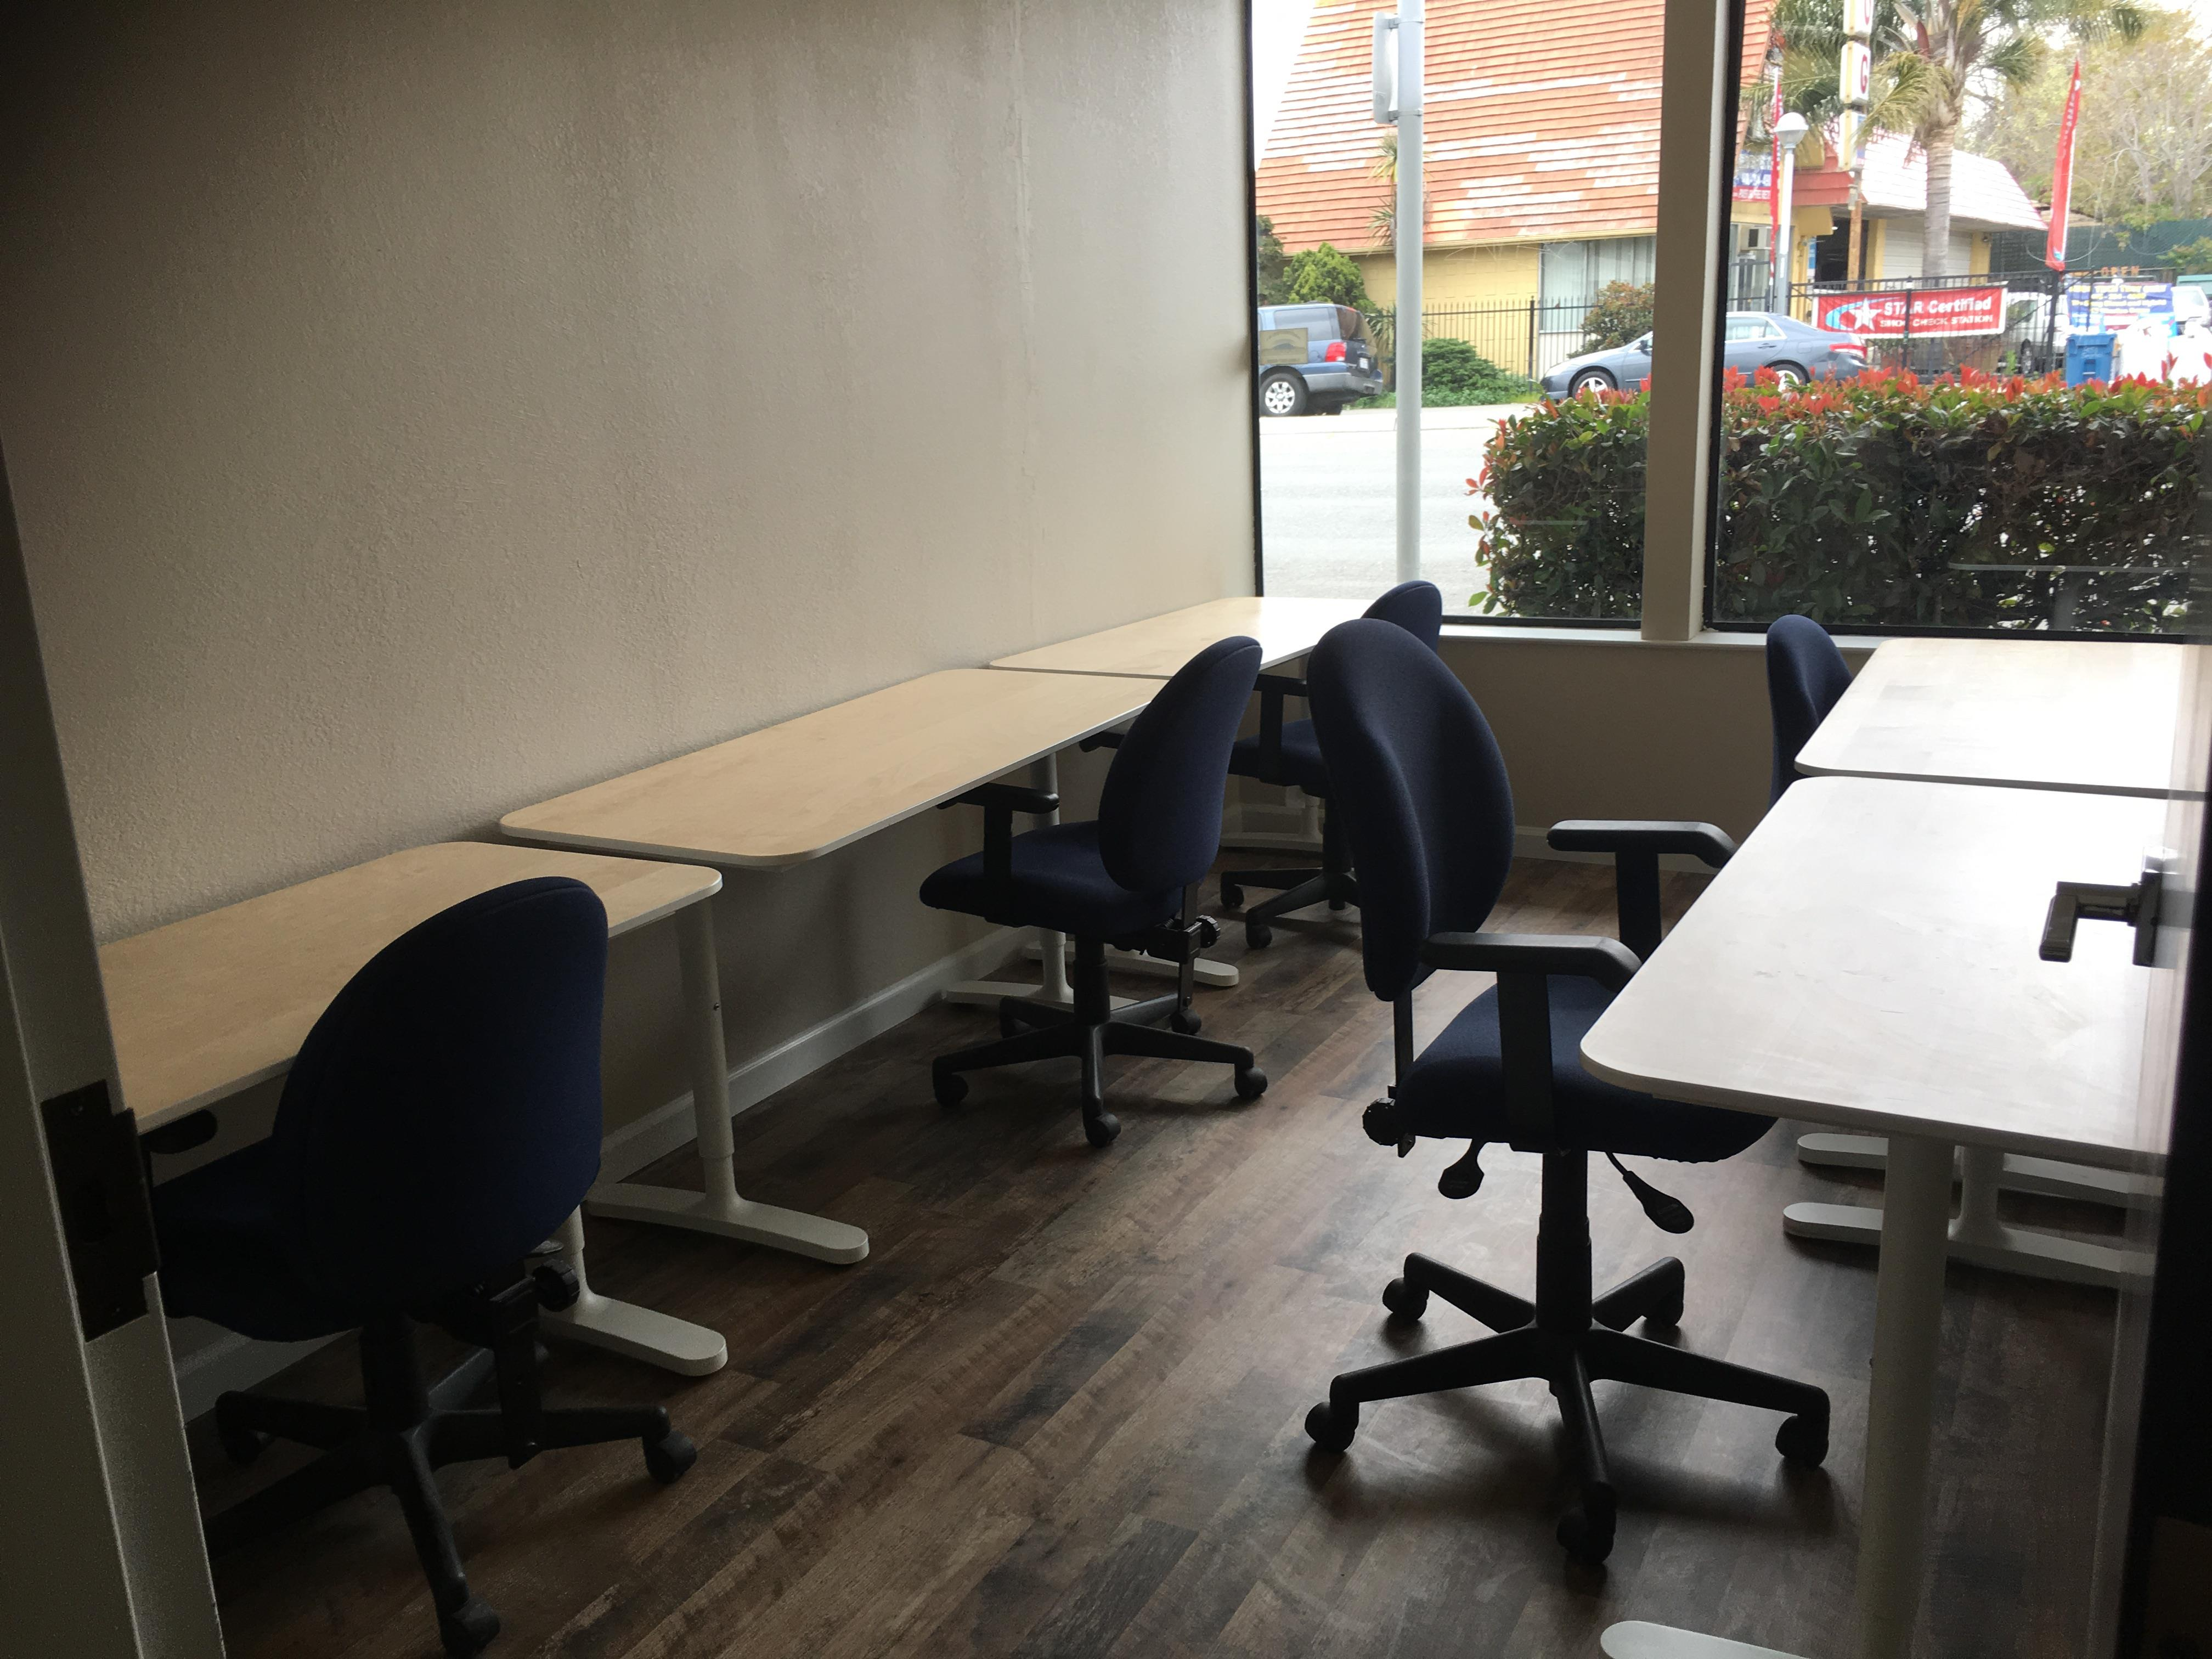 ActionSpot Co-working /Shared Office Space - Office Suite #102